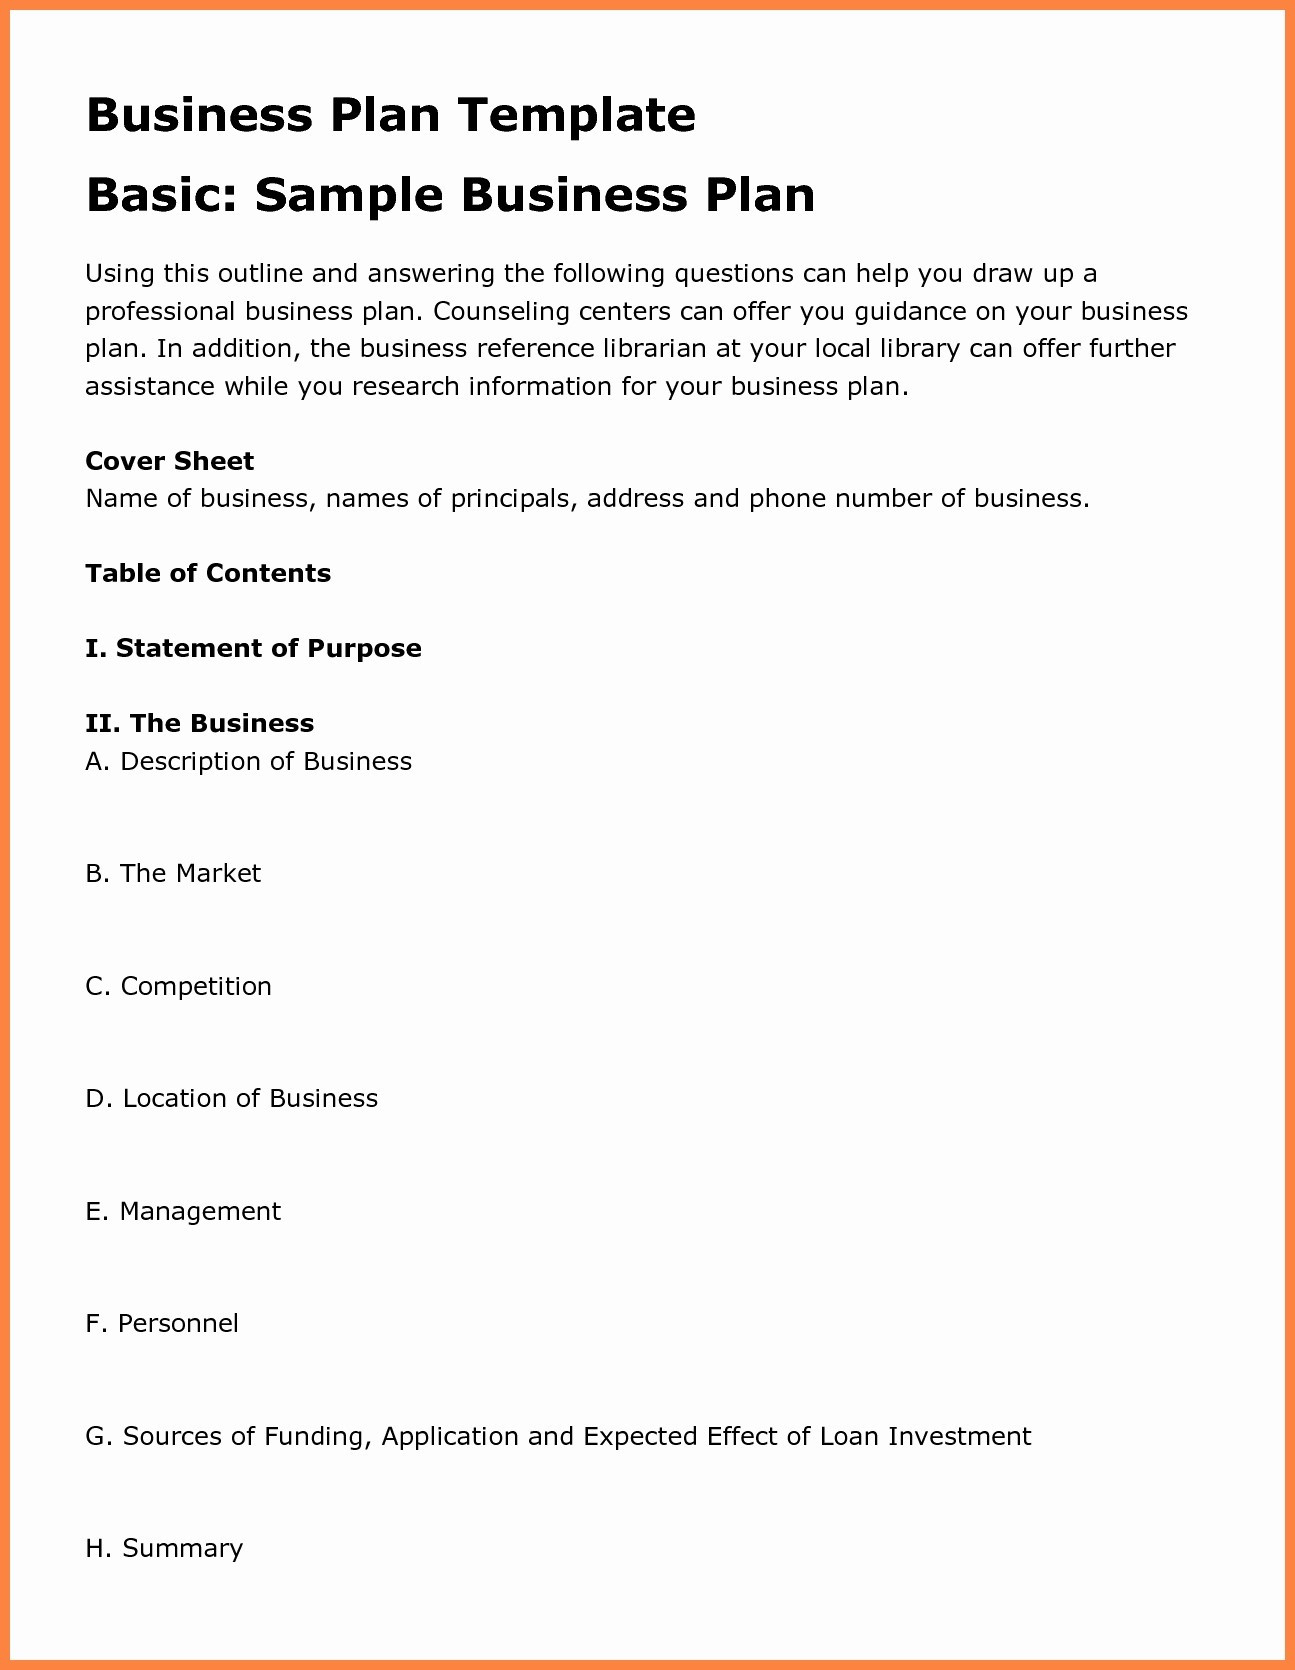 Free Pub Business Plan Template Brewery Popular Valid ~ Tinypetition Inside Brewery Business Plan Template Free